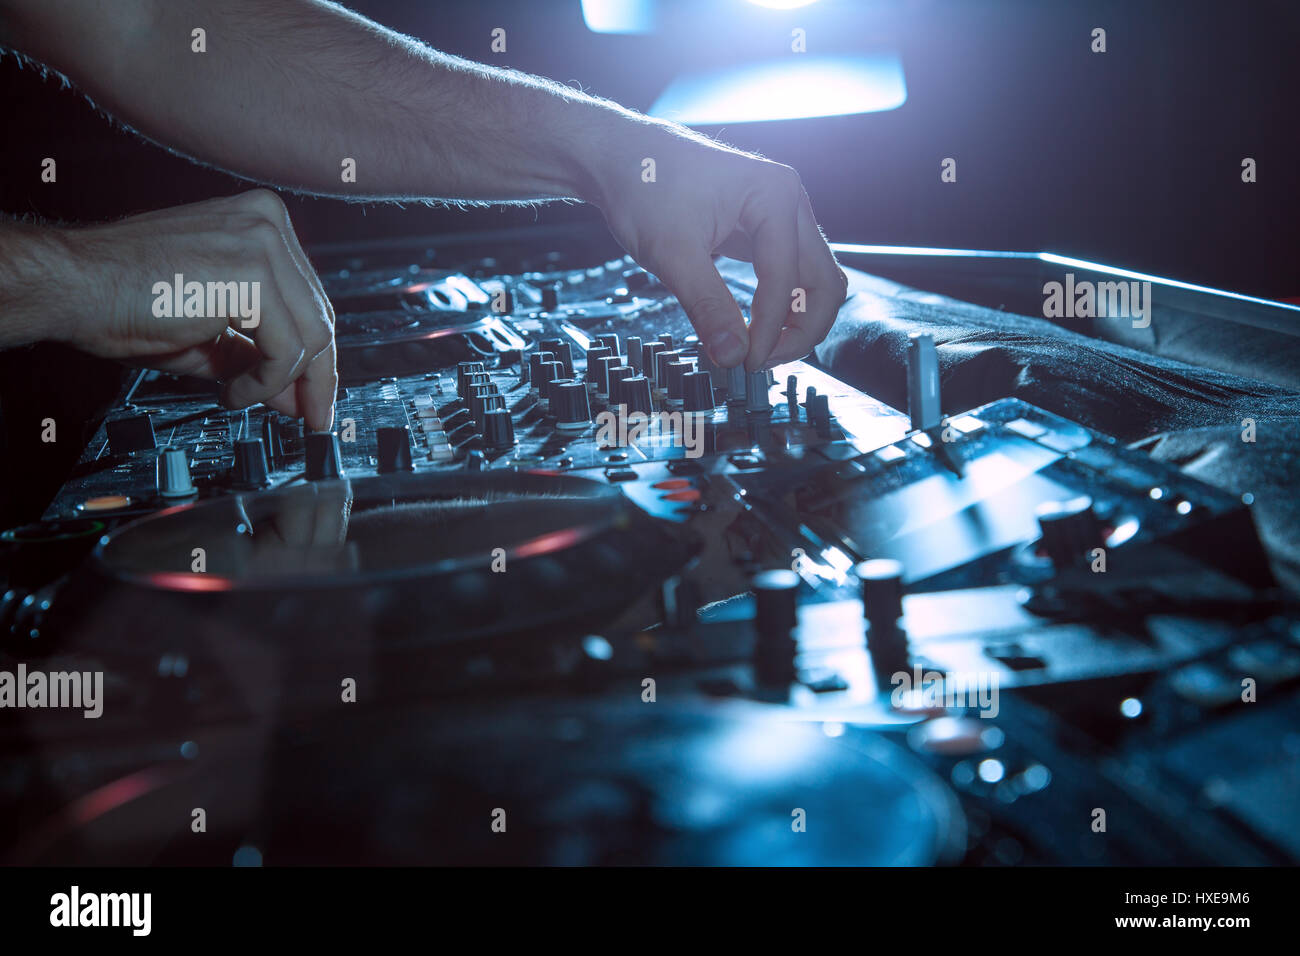 DJ Music night club, DJ technique - CD players and DJ console during the party. - Stock Image